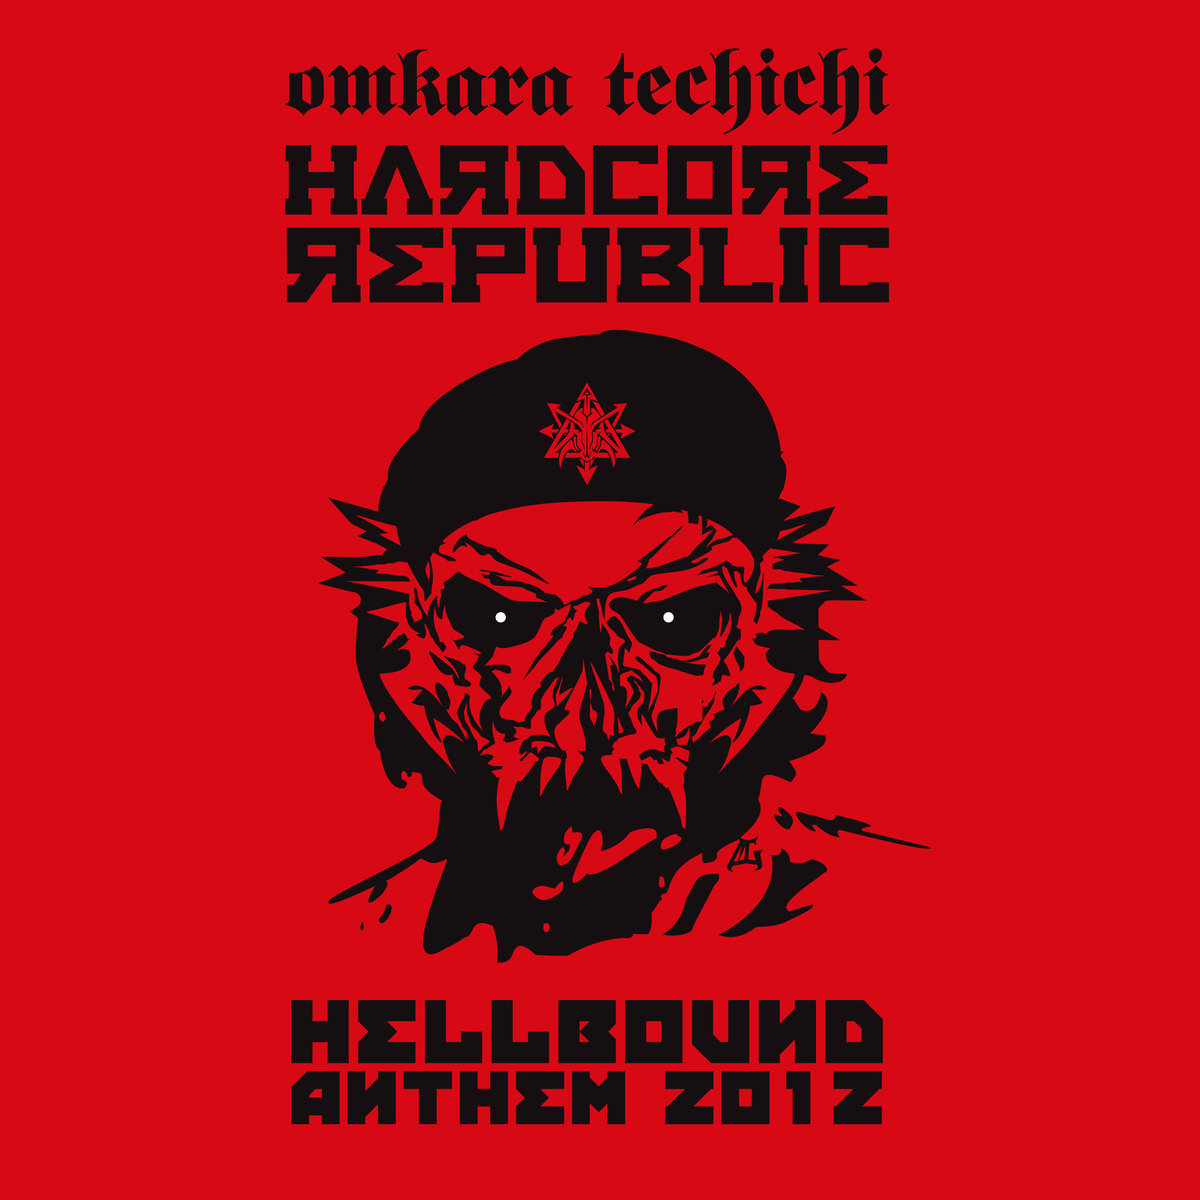 Omkara Techichi - Hardcore Republic (Hellbound Anthem 2012) (artwork)